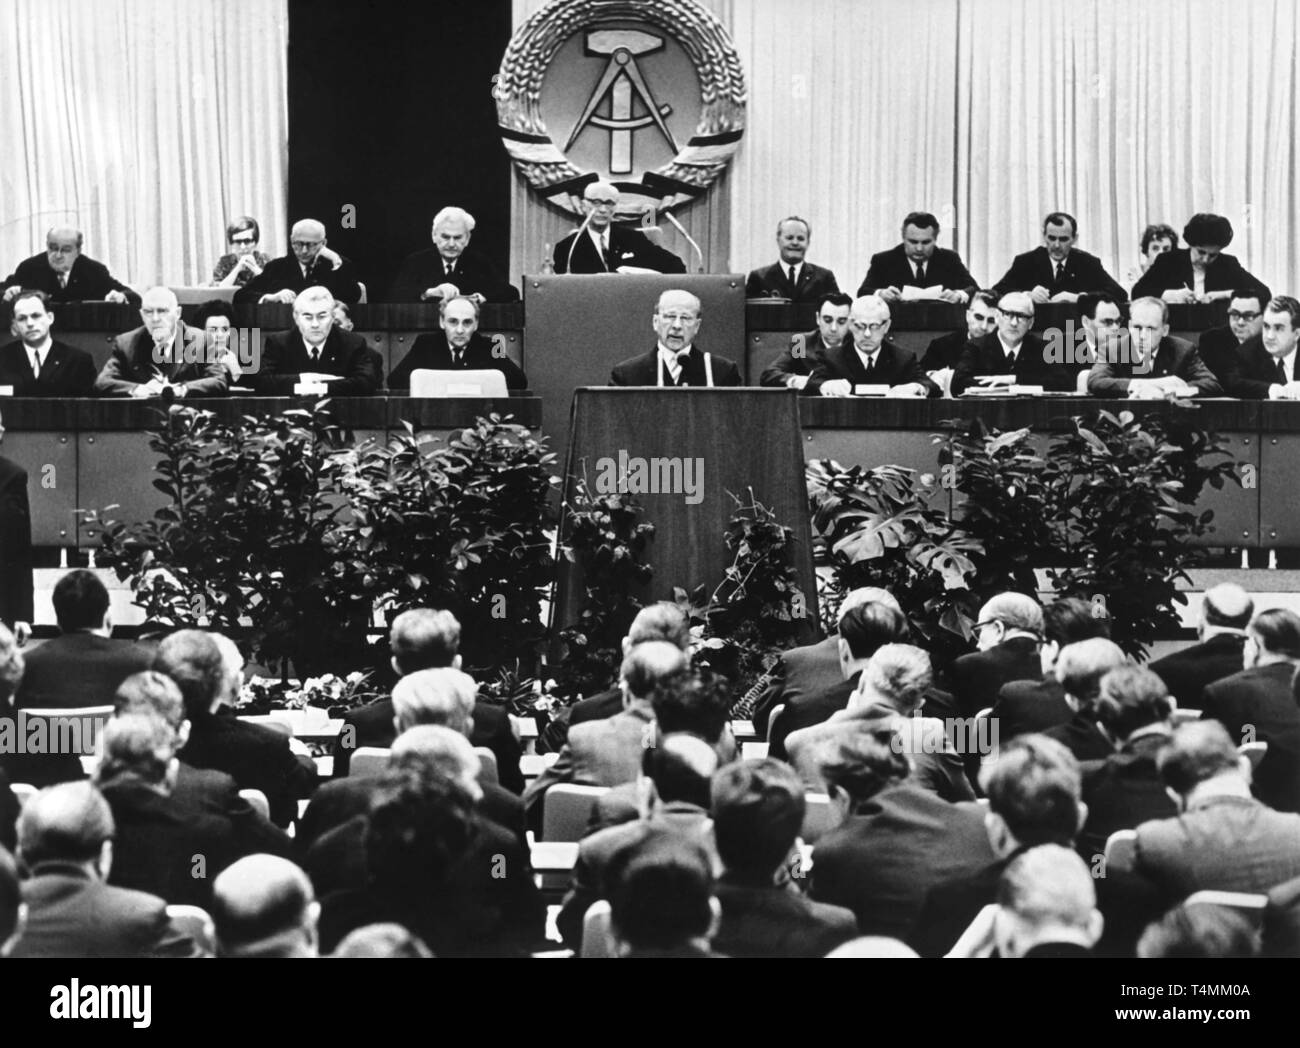 Walter Ulbricht (C), Chairman of the Council of State of the German Democratic Republic, pictured during a speech in front of the executive committee of the People's Chamber in East Berlin on 31 January 1968. He presented a draft of a new 'Socialist constitution of the GDR' . Ulbricht cited from article eight of the constitution:'The German Democratic Republic and its citizens seek to overcome the division forced on the German nation by imperialism, and to gradually reproach the two German states to the point of their unification on the basis of democracy and socialism.' Photo: ADN Zentralbild - Stock Image